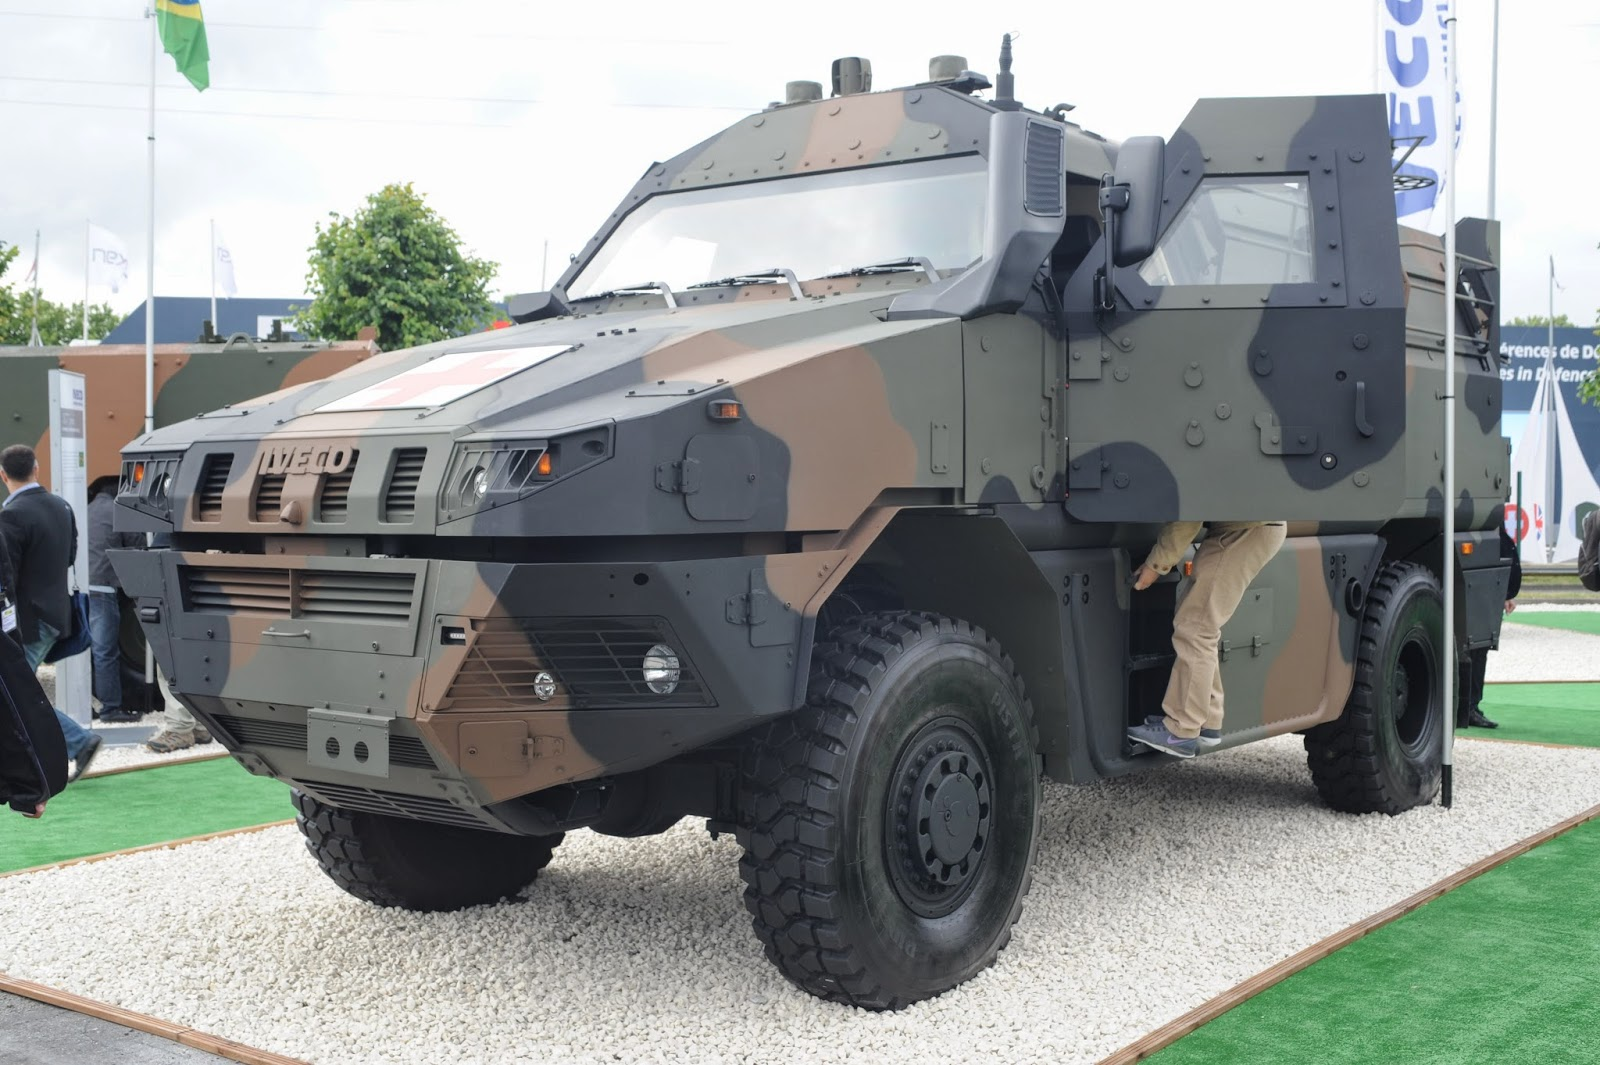 Veco mpv vtmm 4x4 ambulance for the italian army